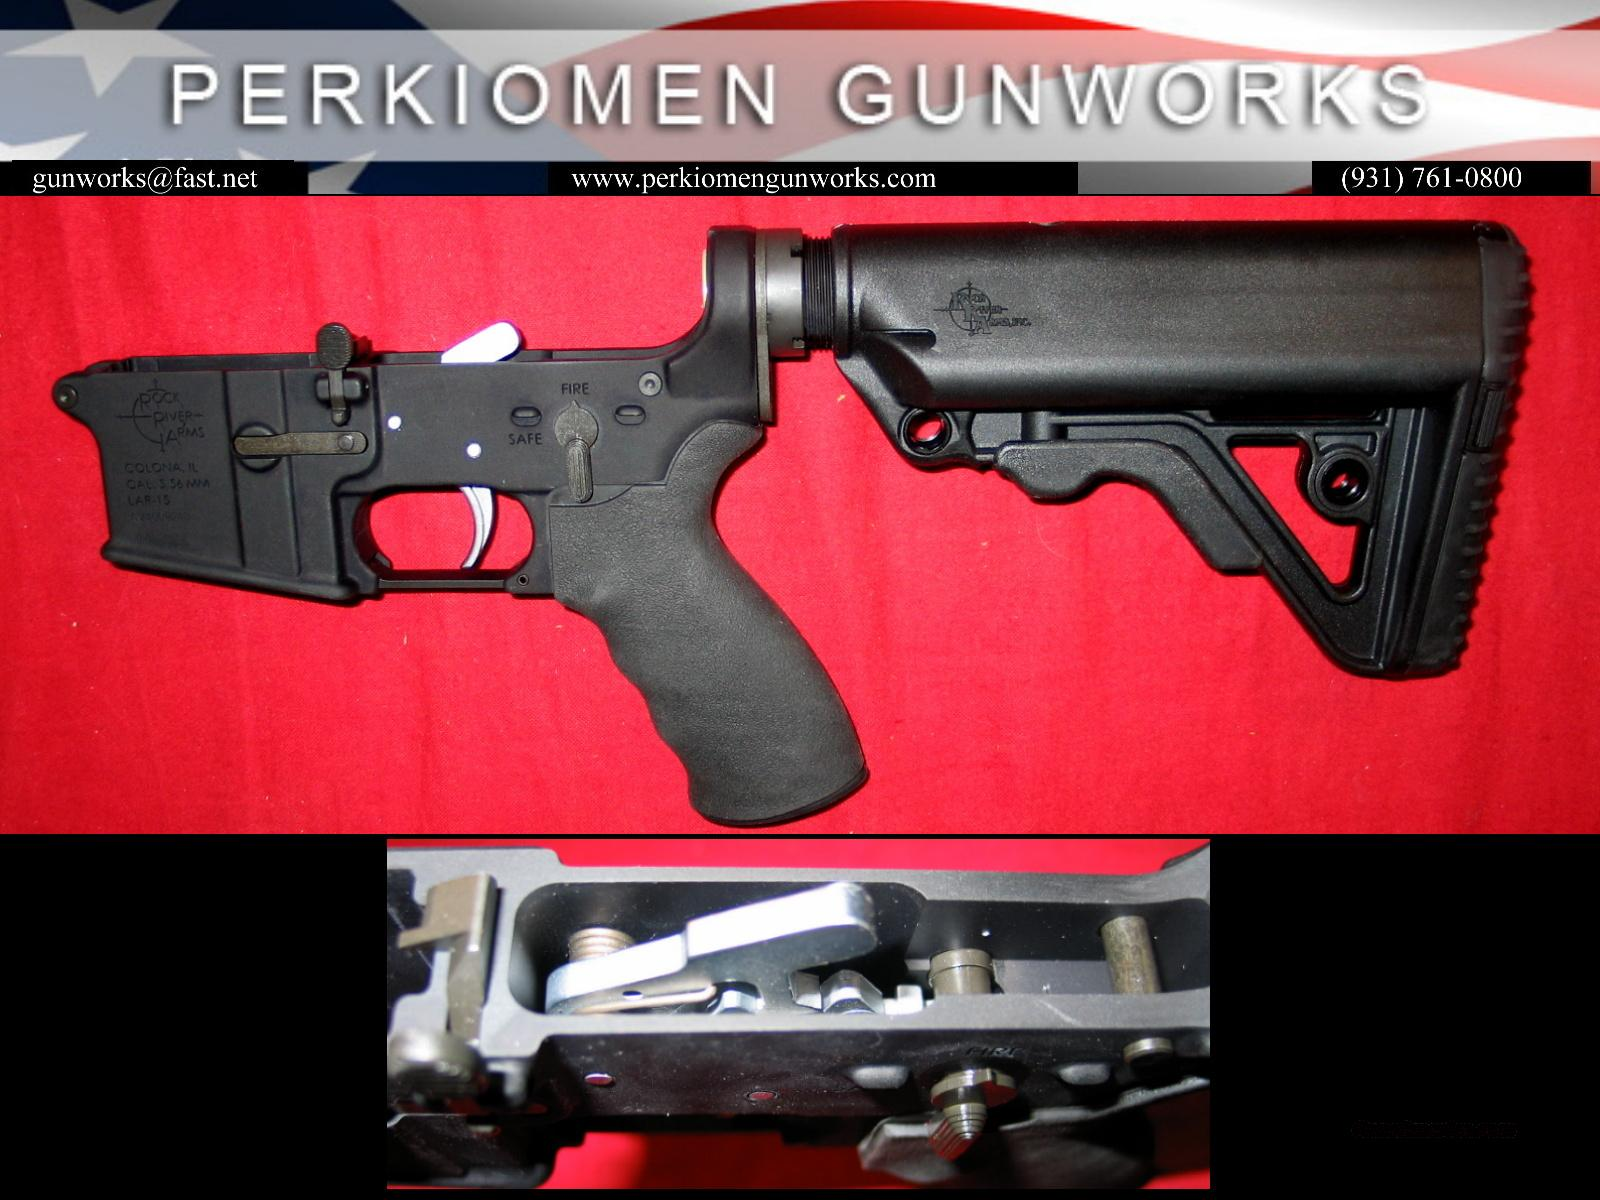 LAR-15 NM Complete Lower w/extras Chrome Trigger, Operator Stock+- NEW  Guns > Rifles > Rock River Arms Rifles